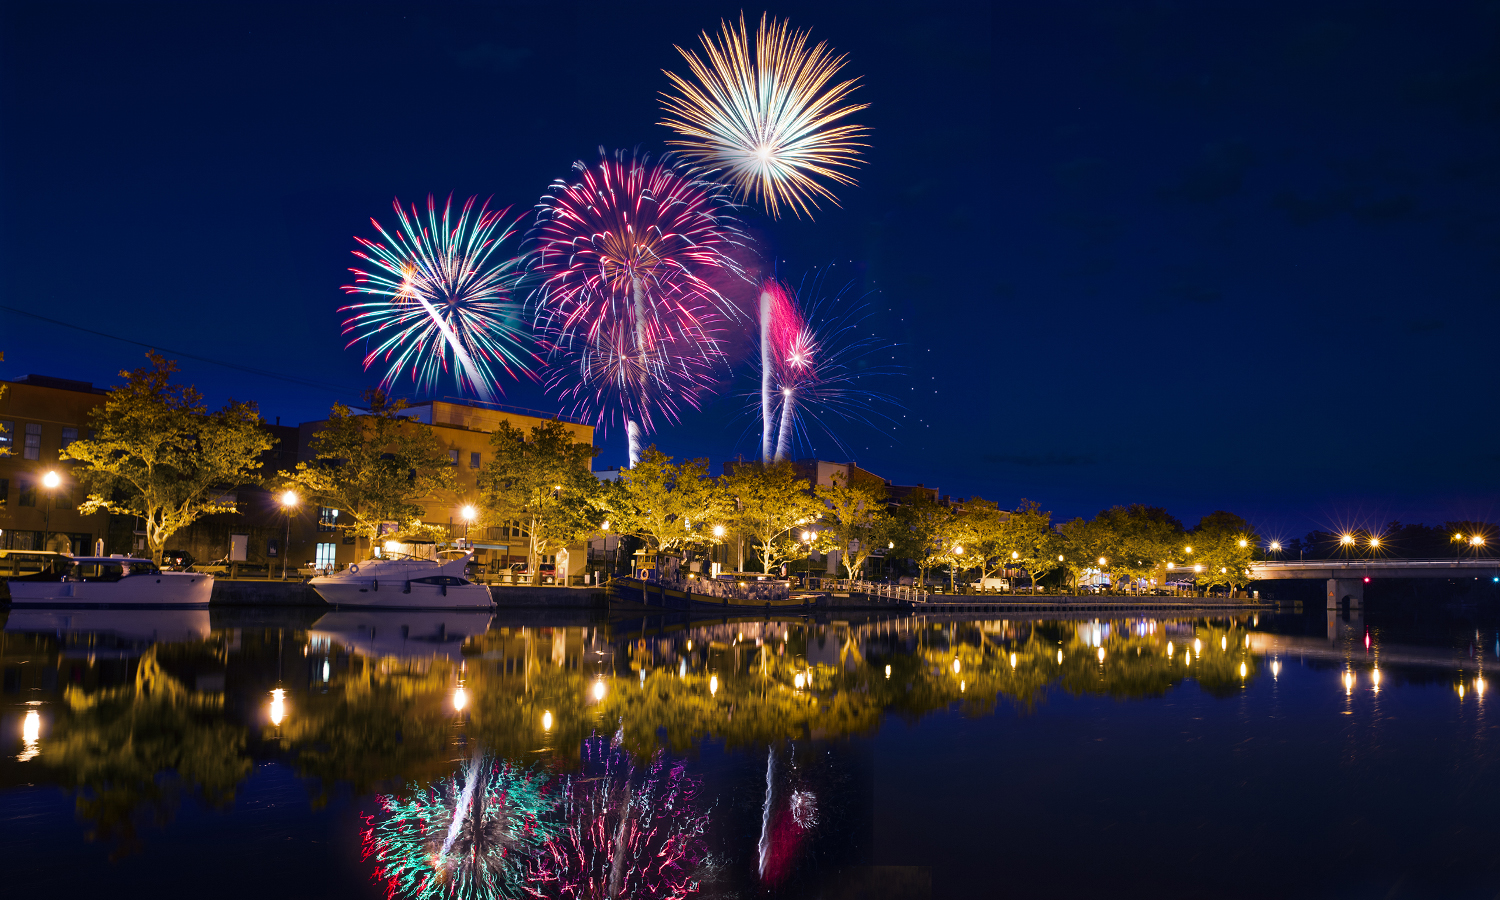 Fireworks illuminate the sky above the village of Seneca Falls, N.Y.